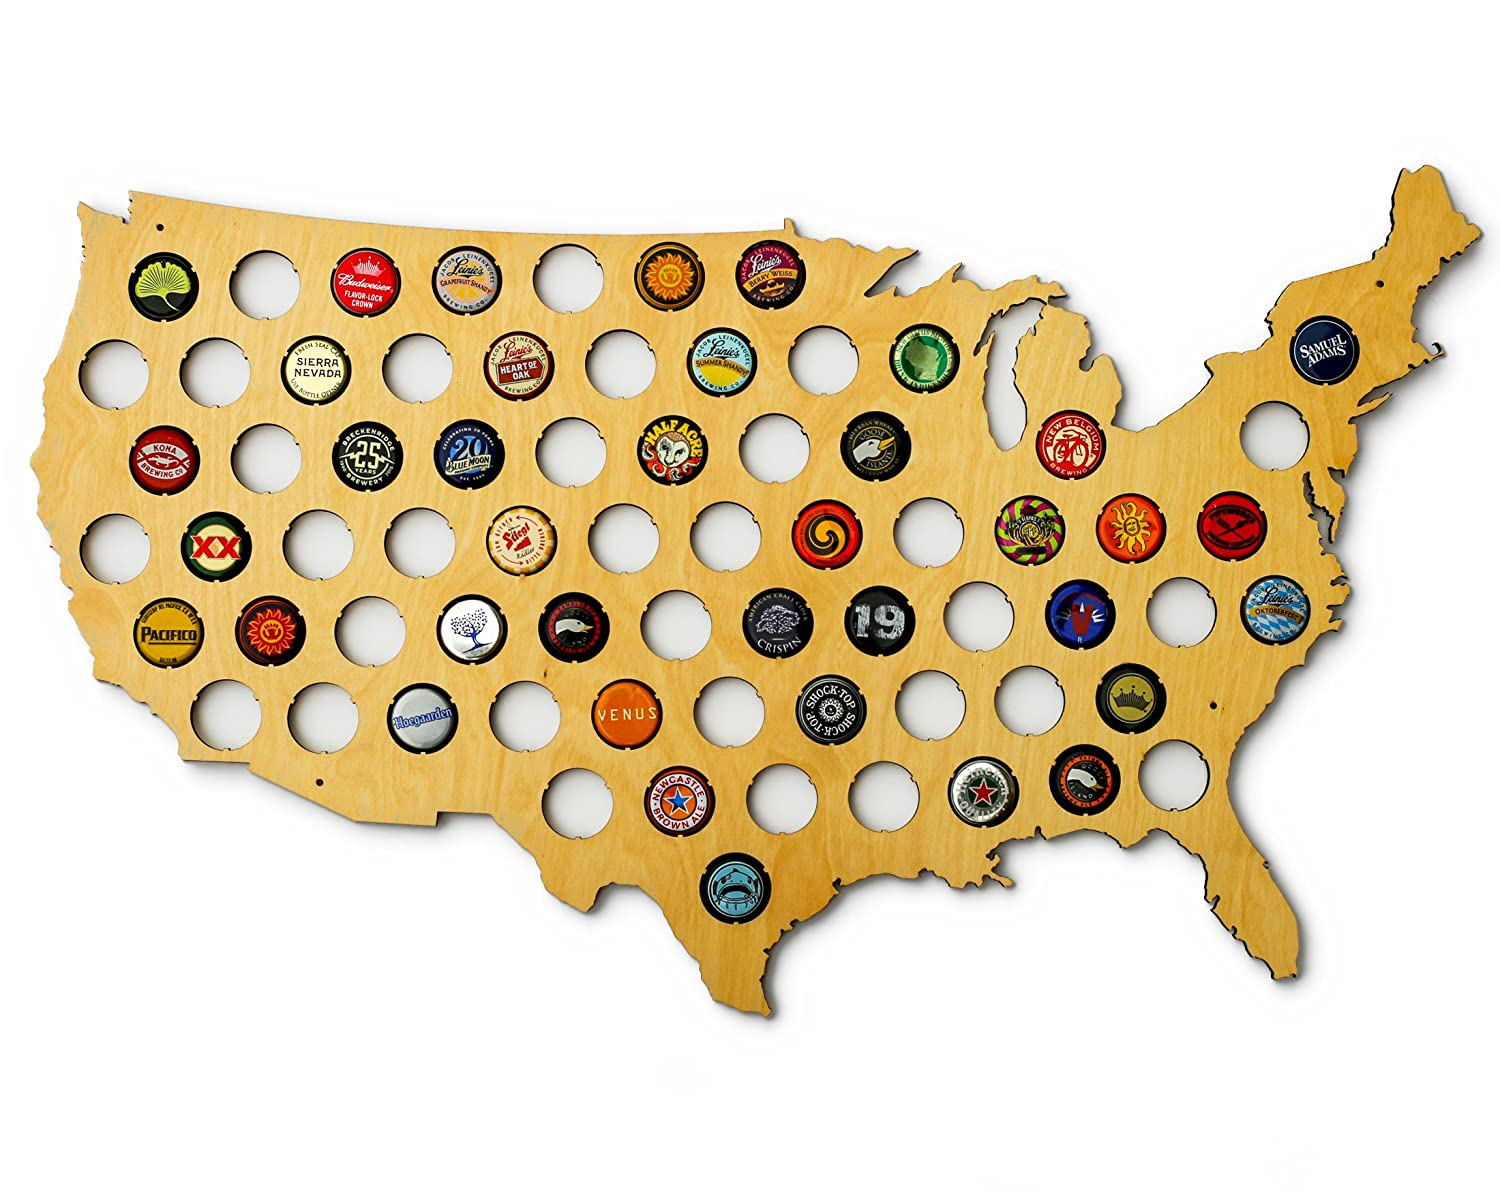 Amazoncom USA Beer Cap Map Ultra Detailed Glossy Wood Bottle - Map of the usa